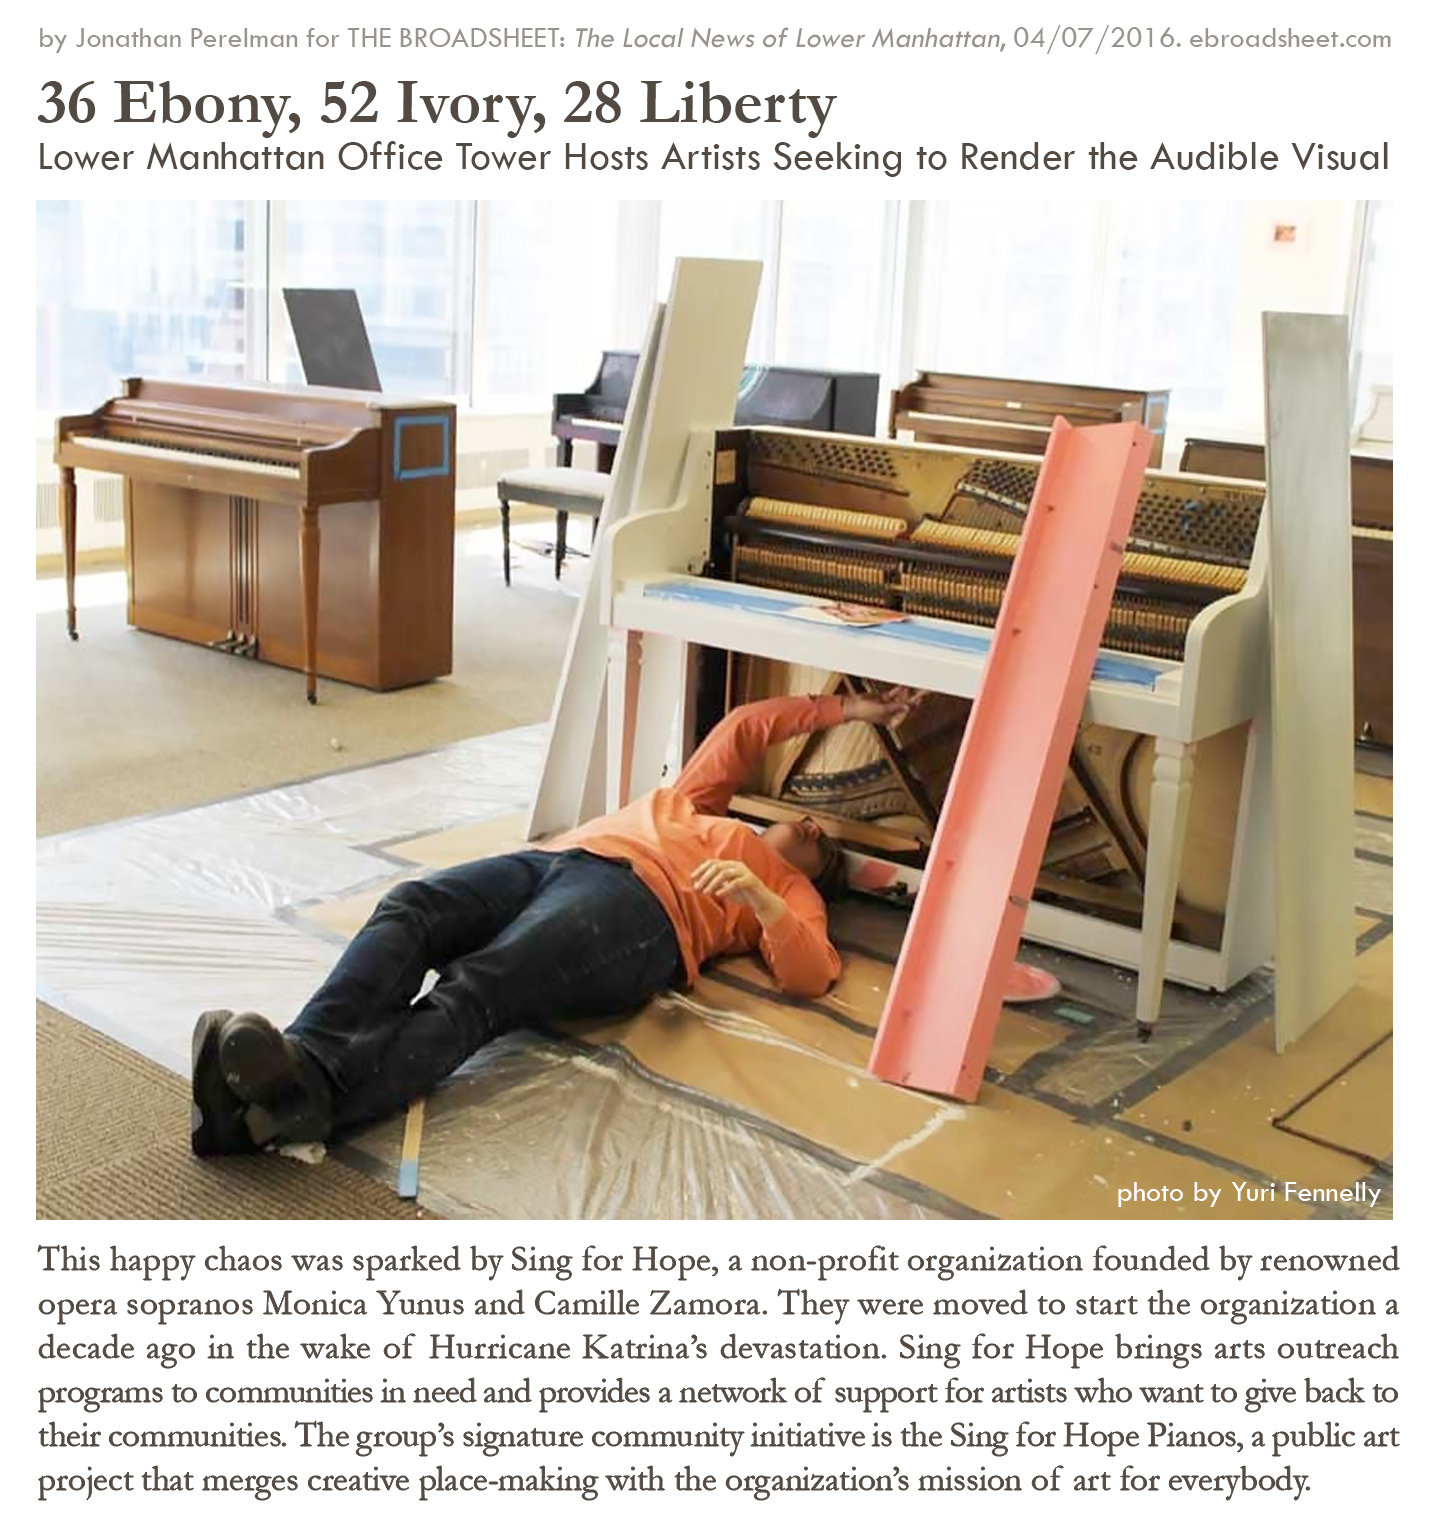 """(Charis was featured in a photograph: Fennelly, Yuri. """"28libertypianoartist1IMG_0954.jpg"""" 2016. Photograph. The Broadsheet. Web. 07 April 2016.)"""